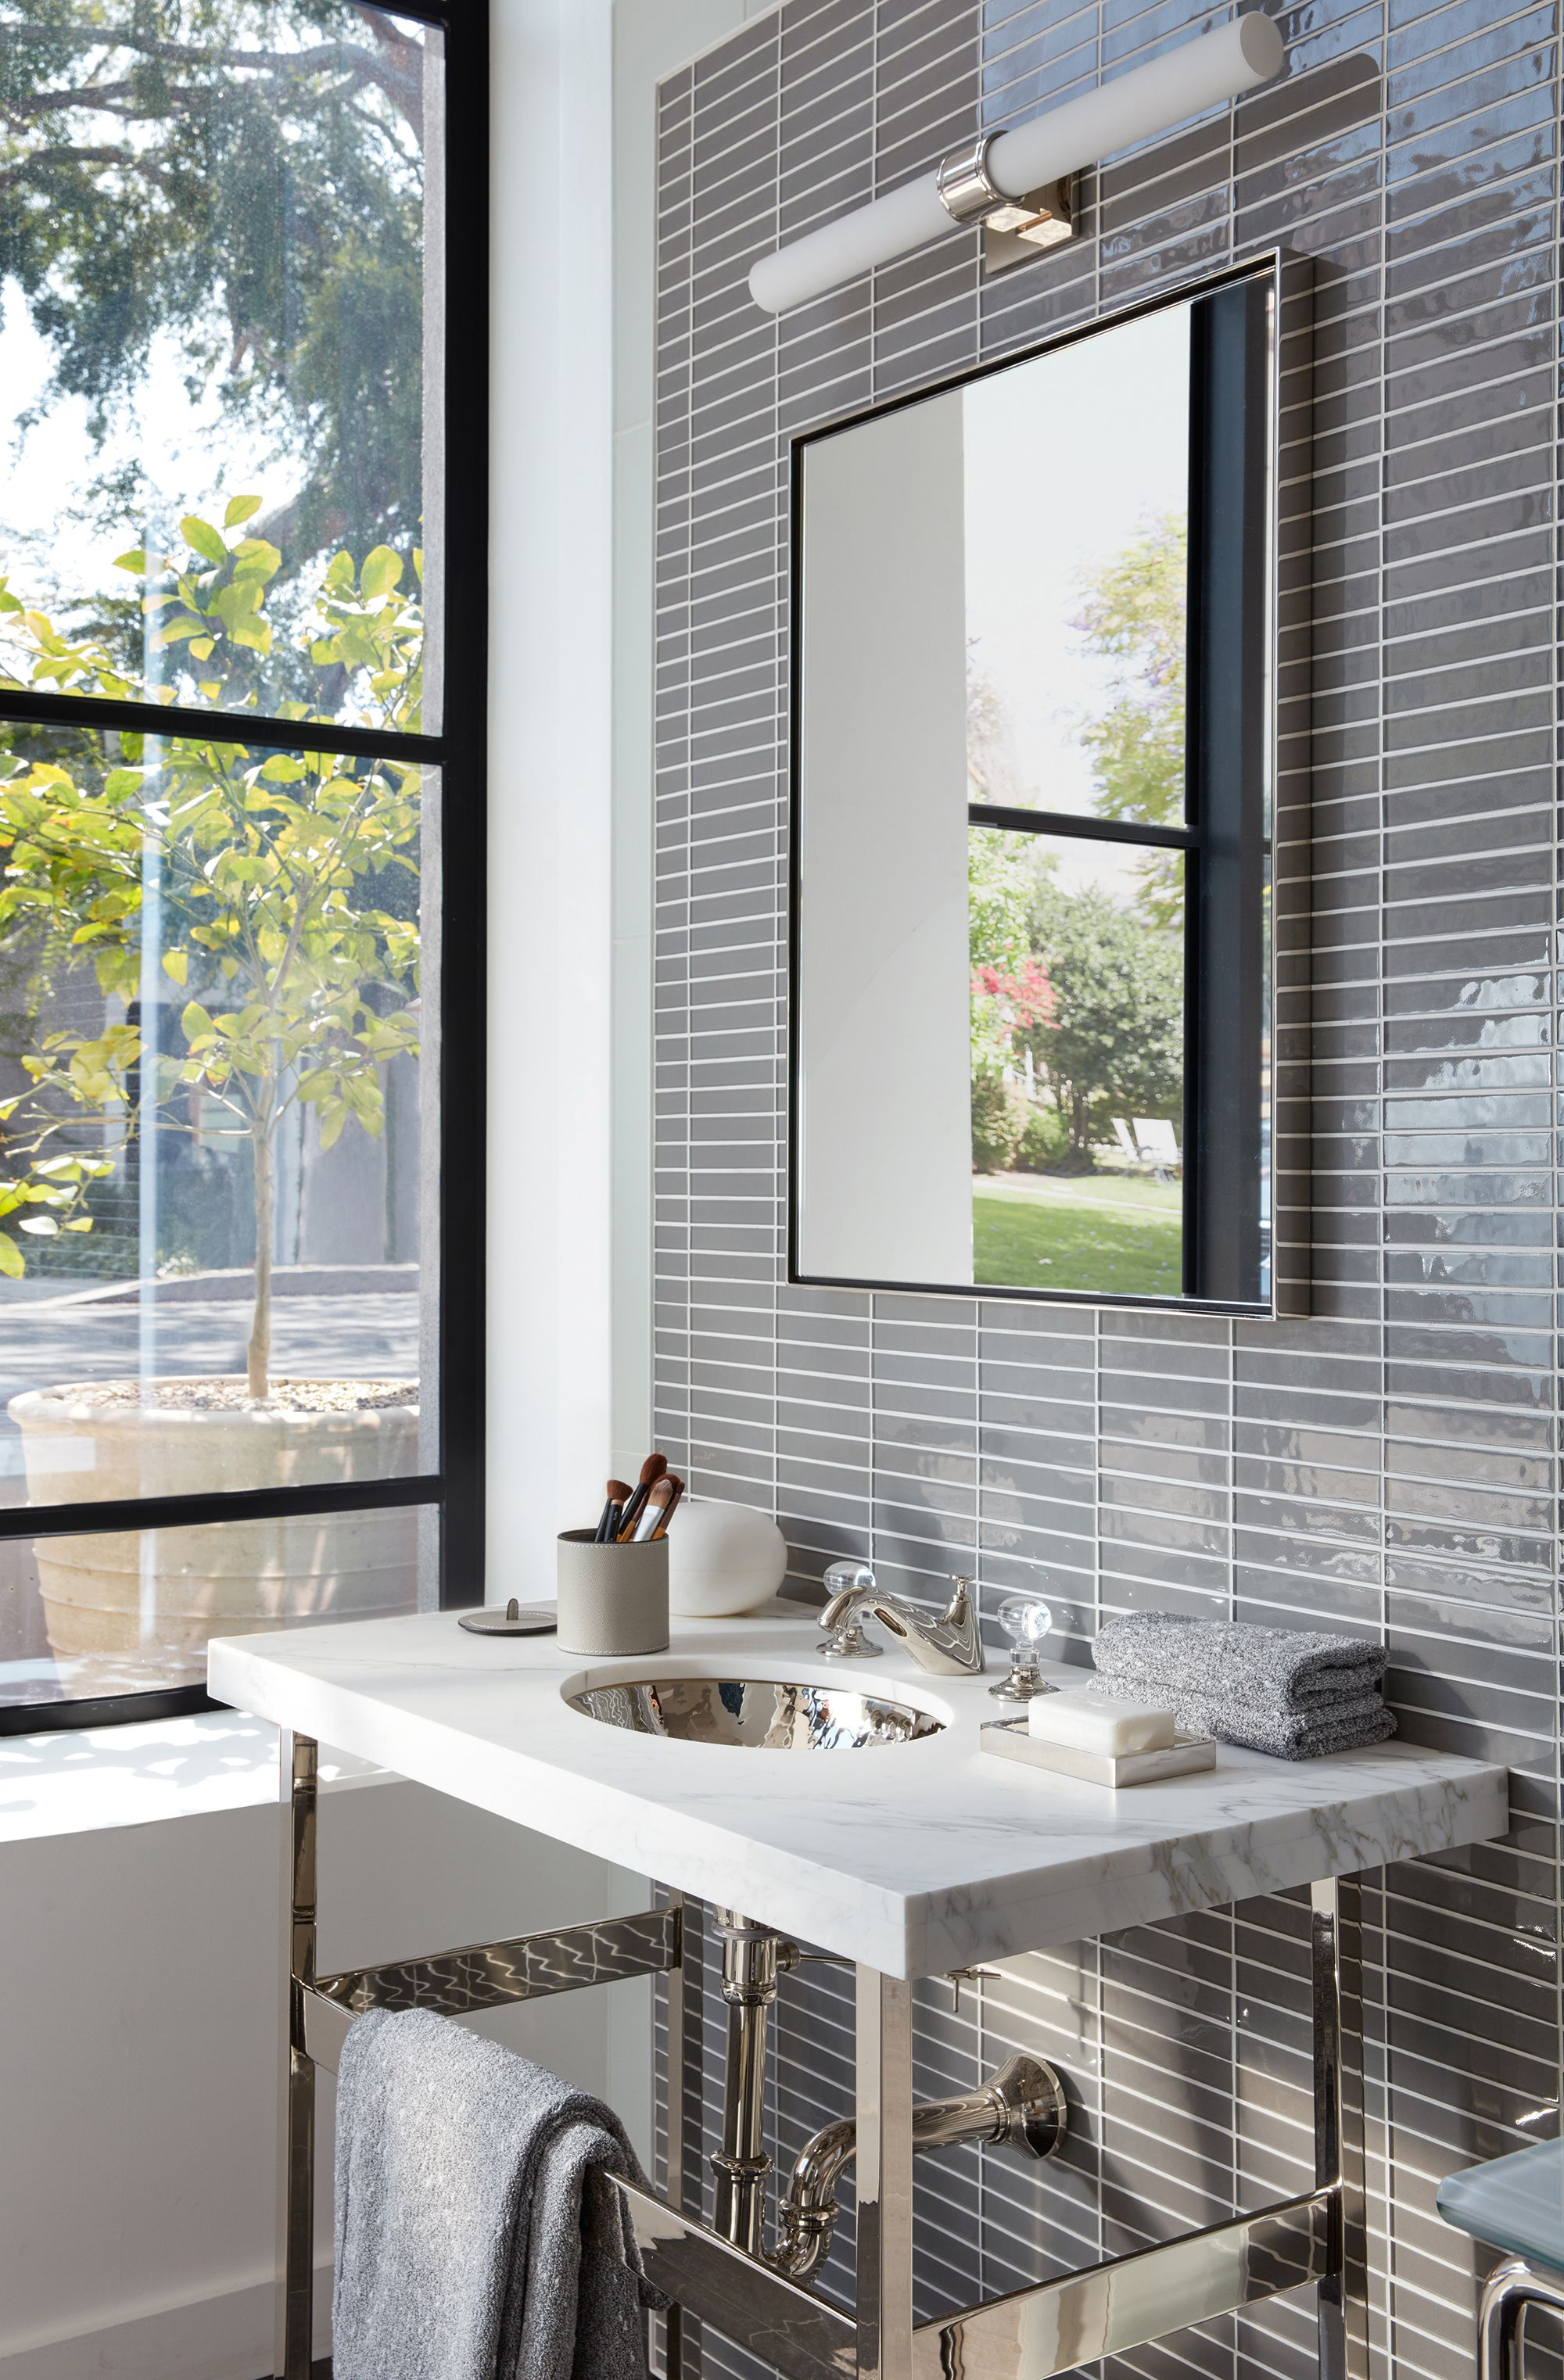 Opus Faucet Los Angeles Showroom Bath Dept Pinterest House Design Bathroom And Modern